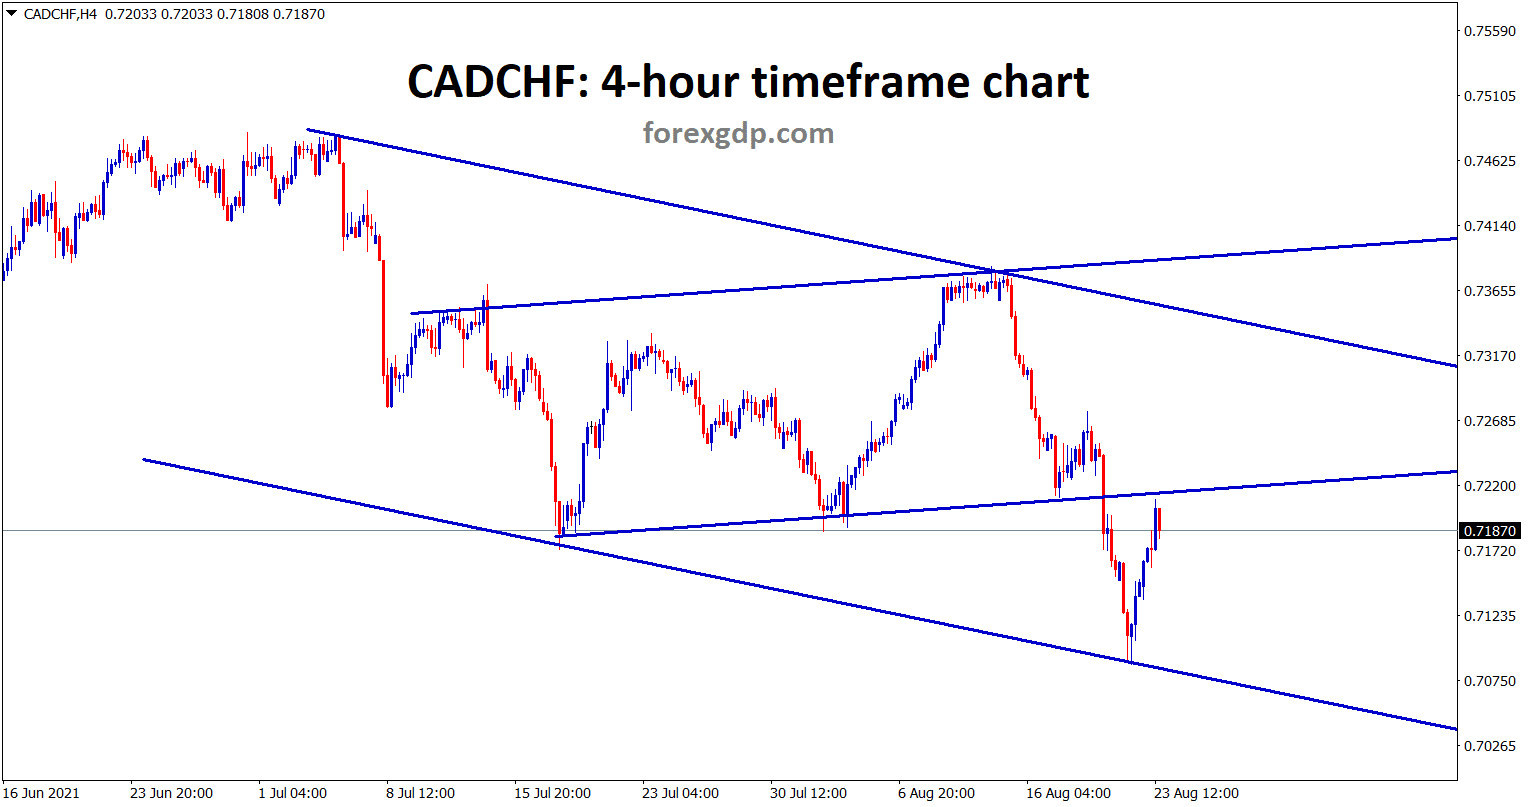 CADCHF is hits the previous broken level of the minor ranging line